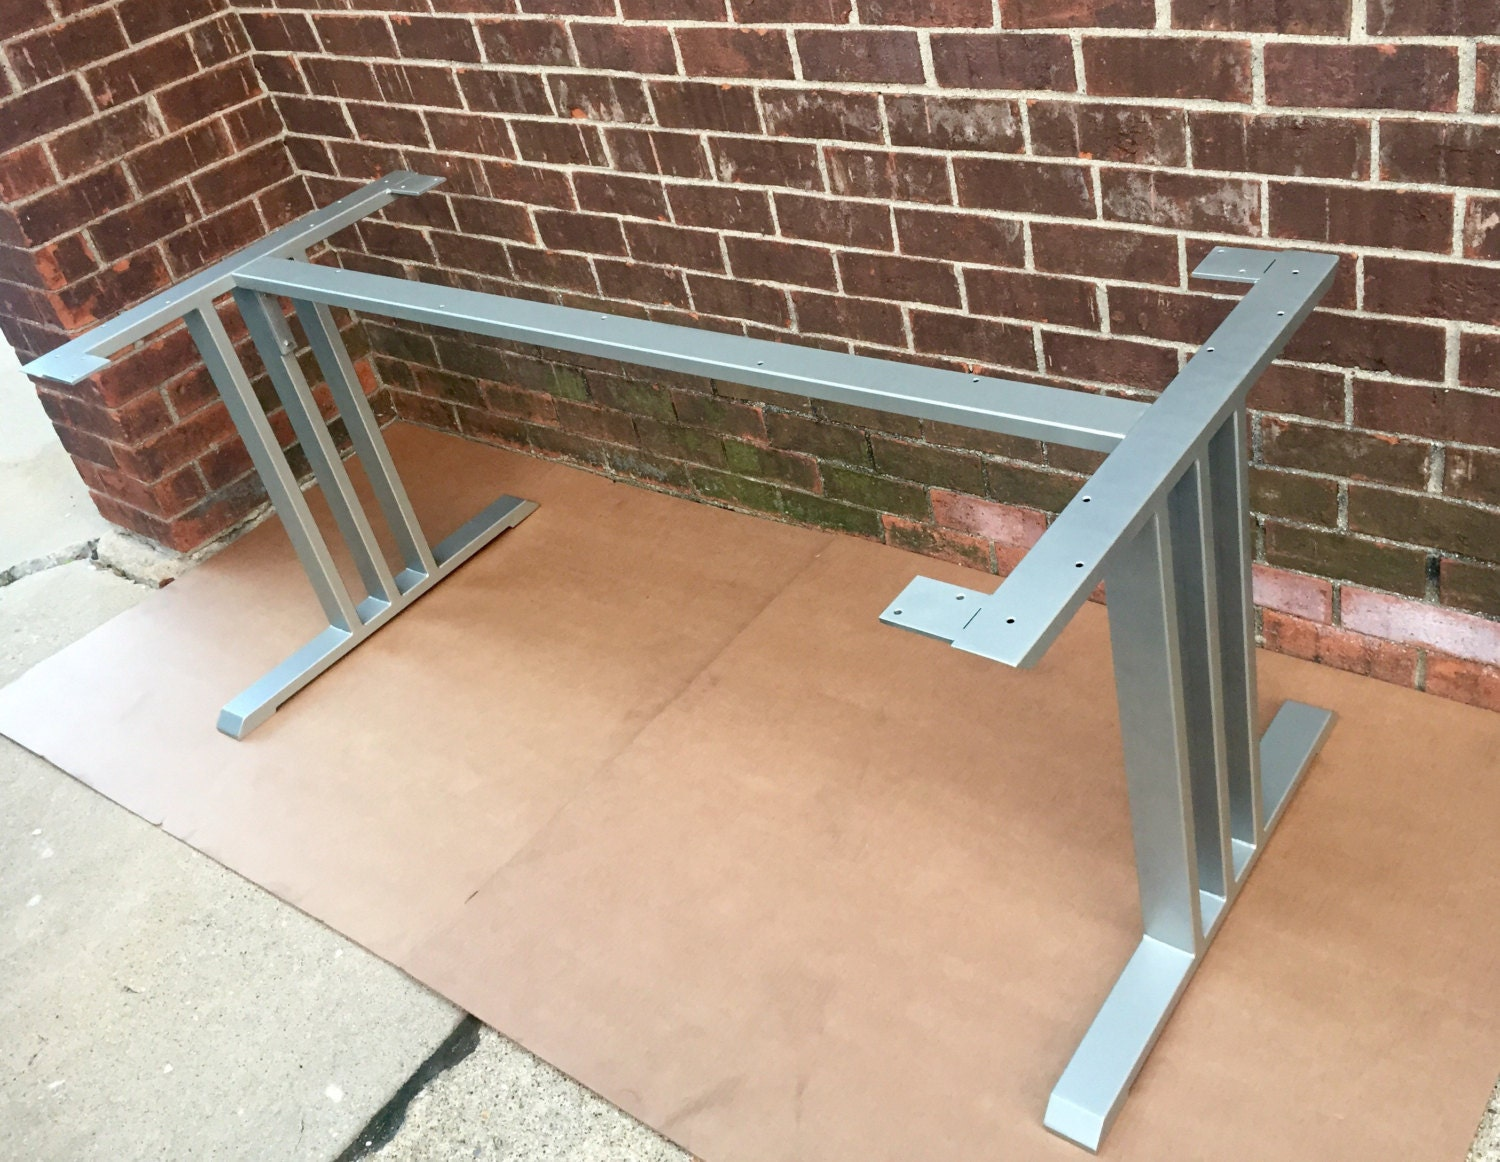 Design dining table base sturdy and heavy duty steel table for How to make a sturdy table base